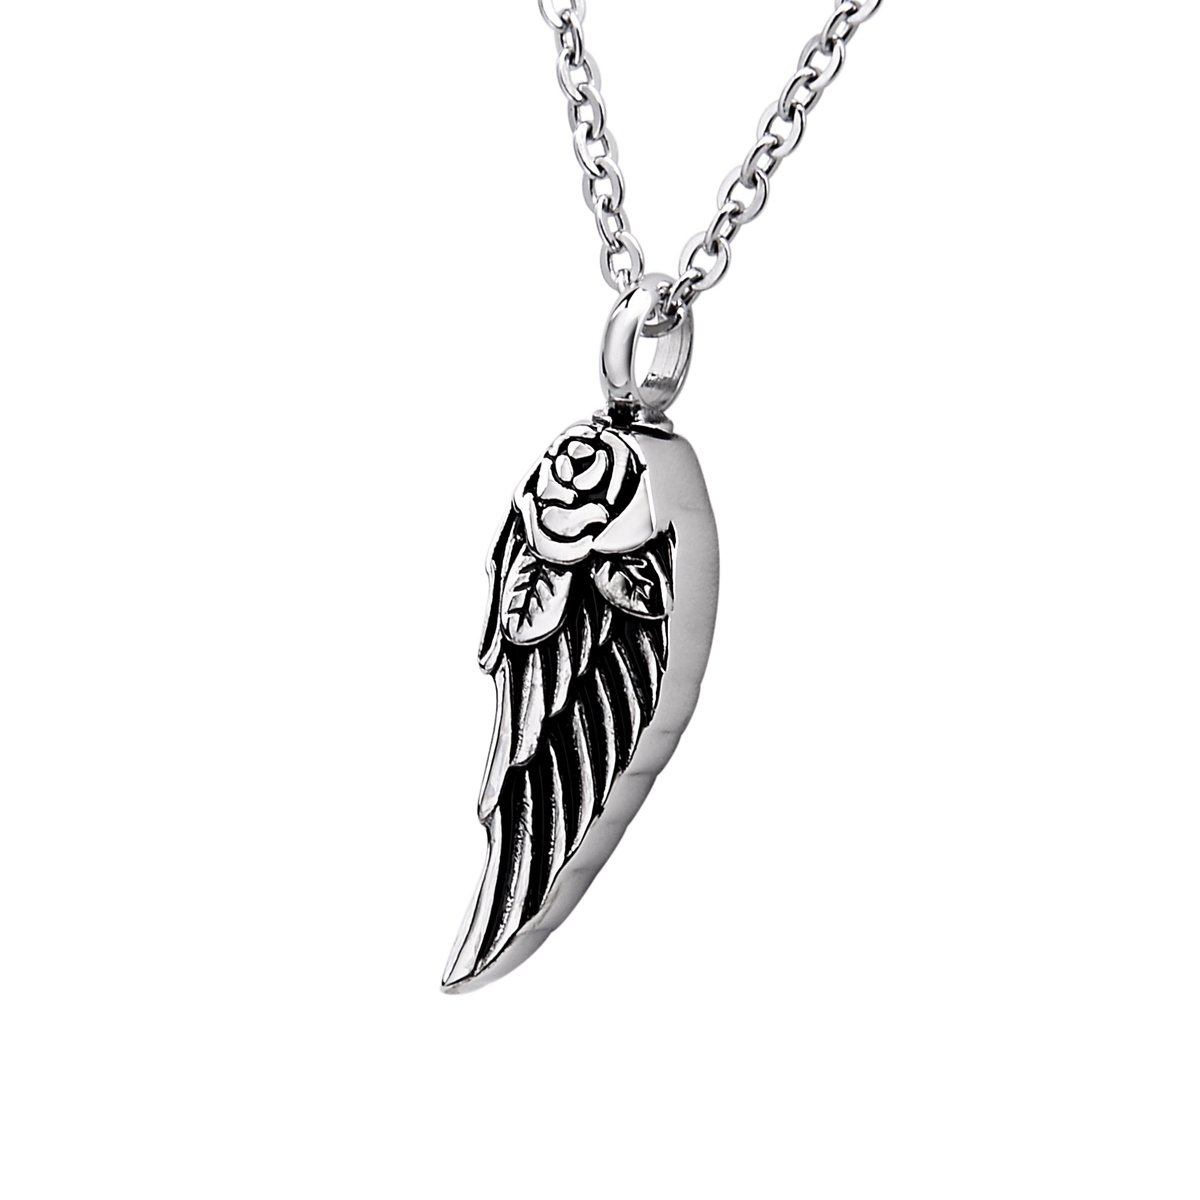 Bluesnow Angel's Wings Urn Keepsake Pendant Necklace, Stainless Steel Memorial Ash Cremation Jewelry B0A0A39SZ